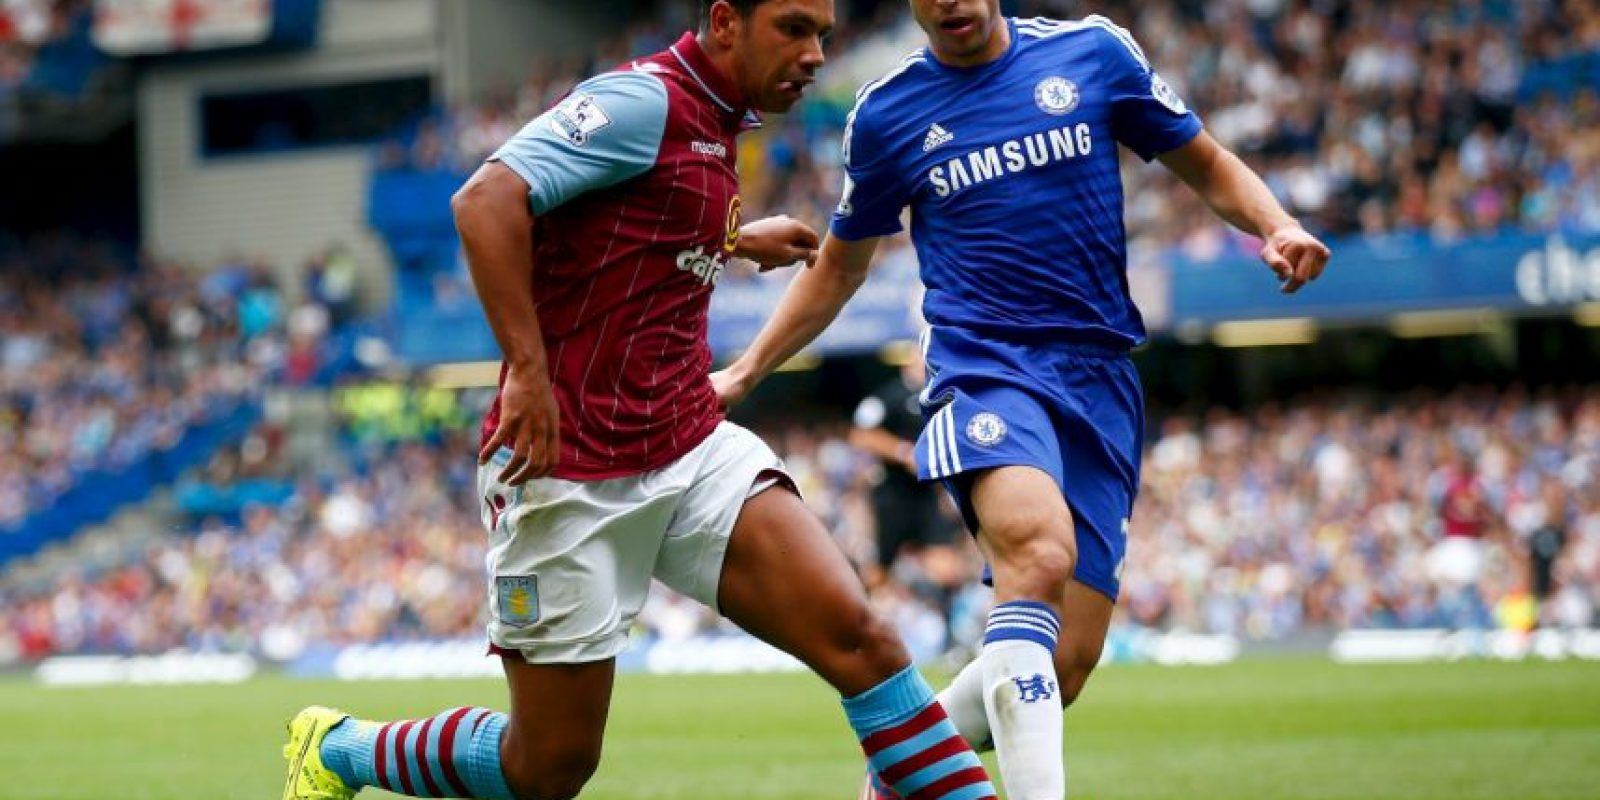 7. Chelsea vs. Aston Villa (Premier League) Foto: Getty Images